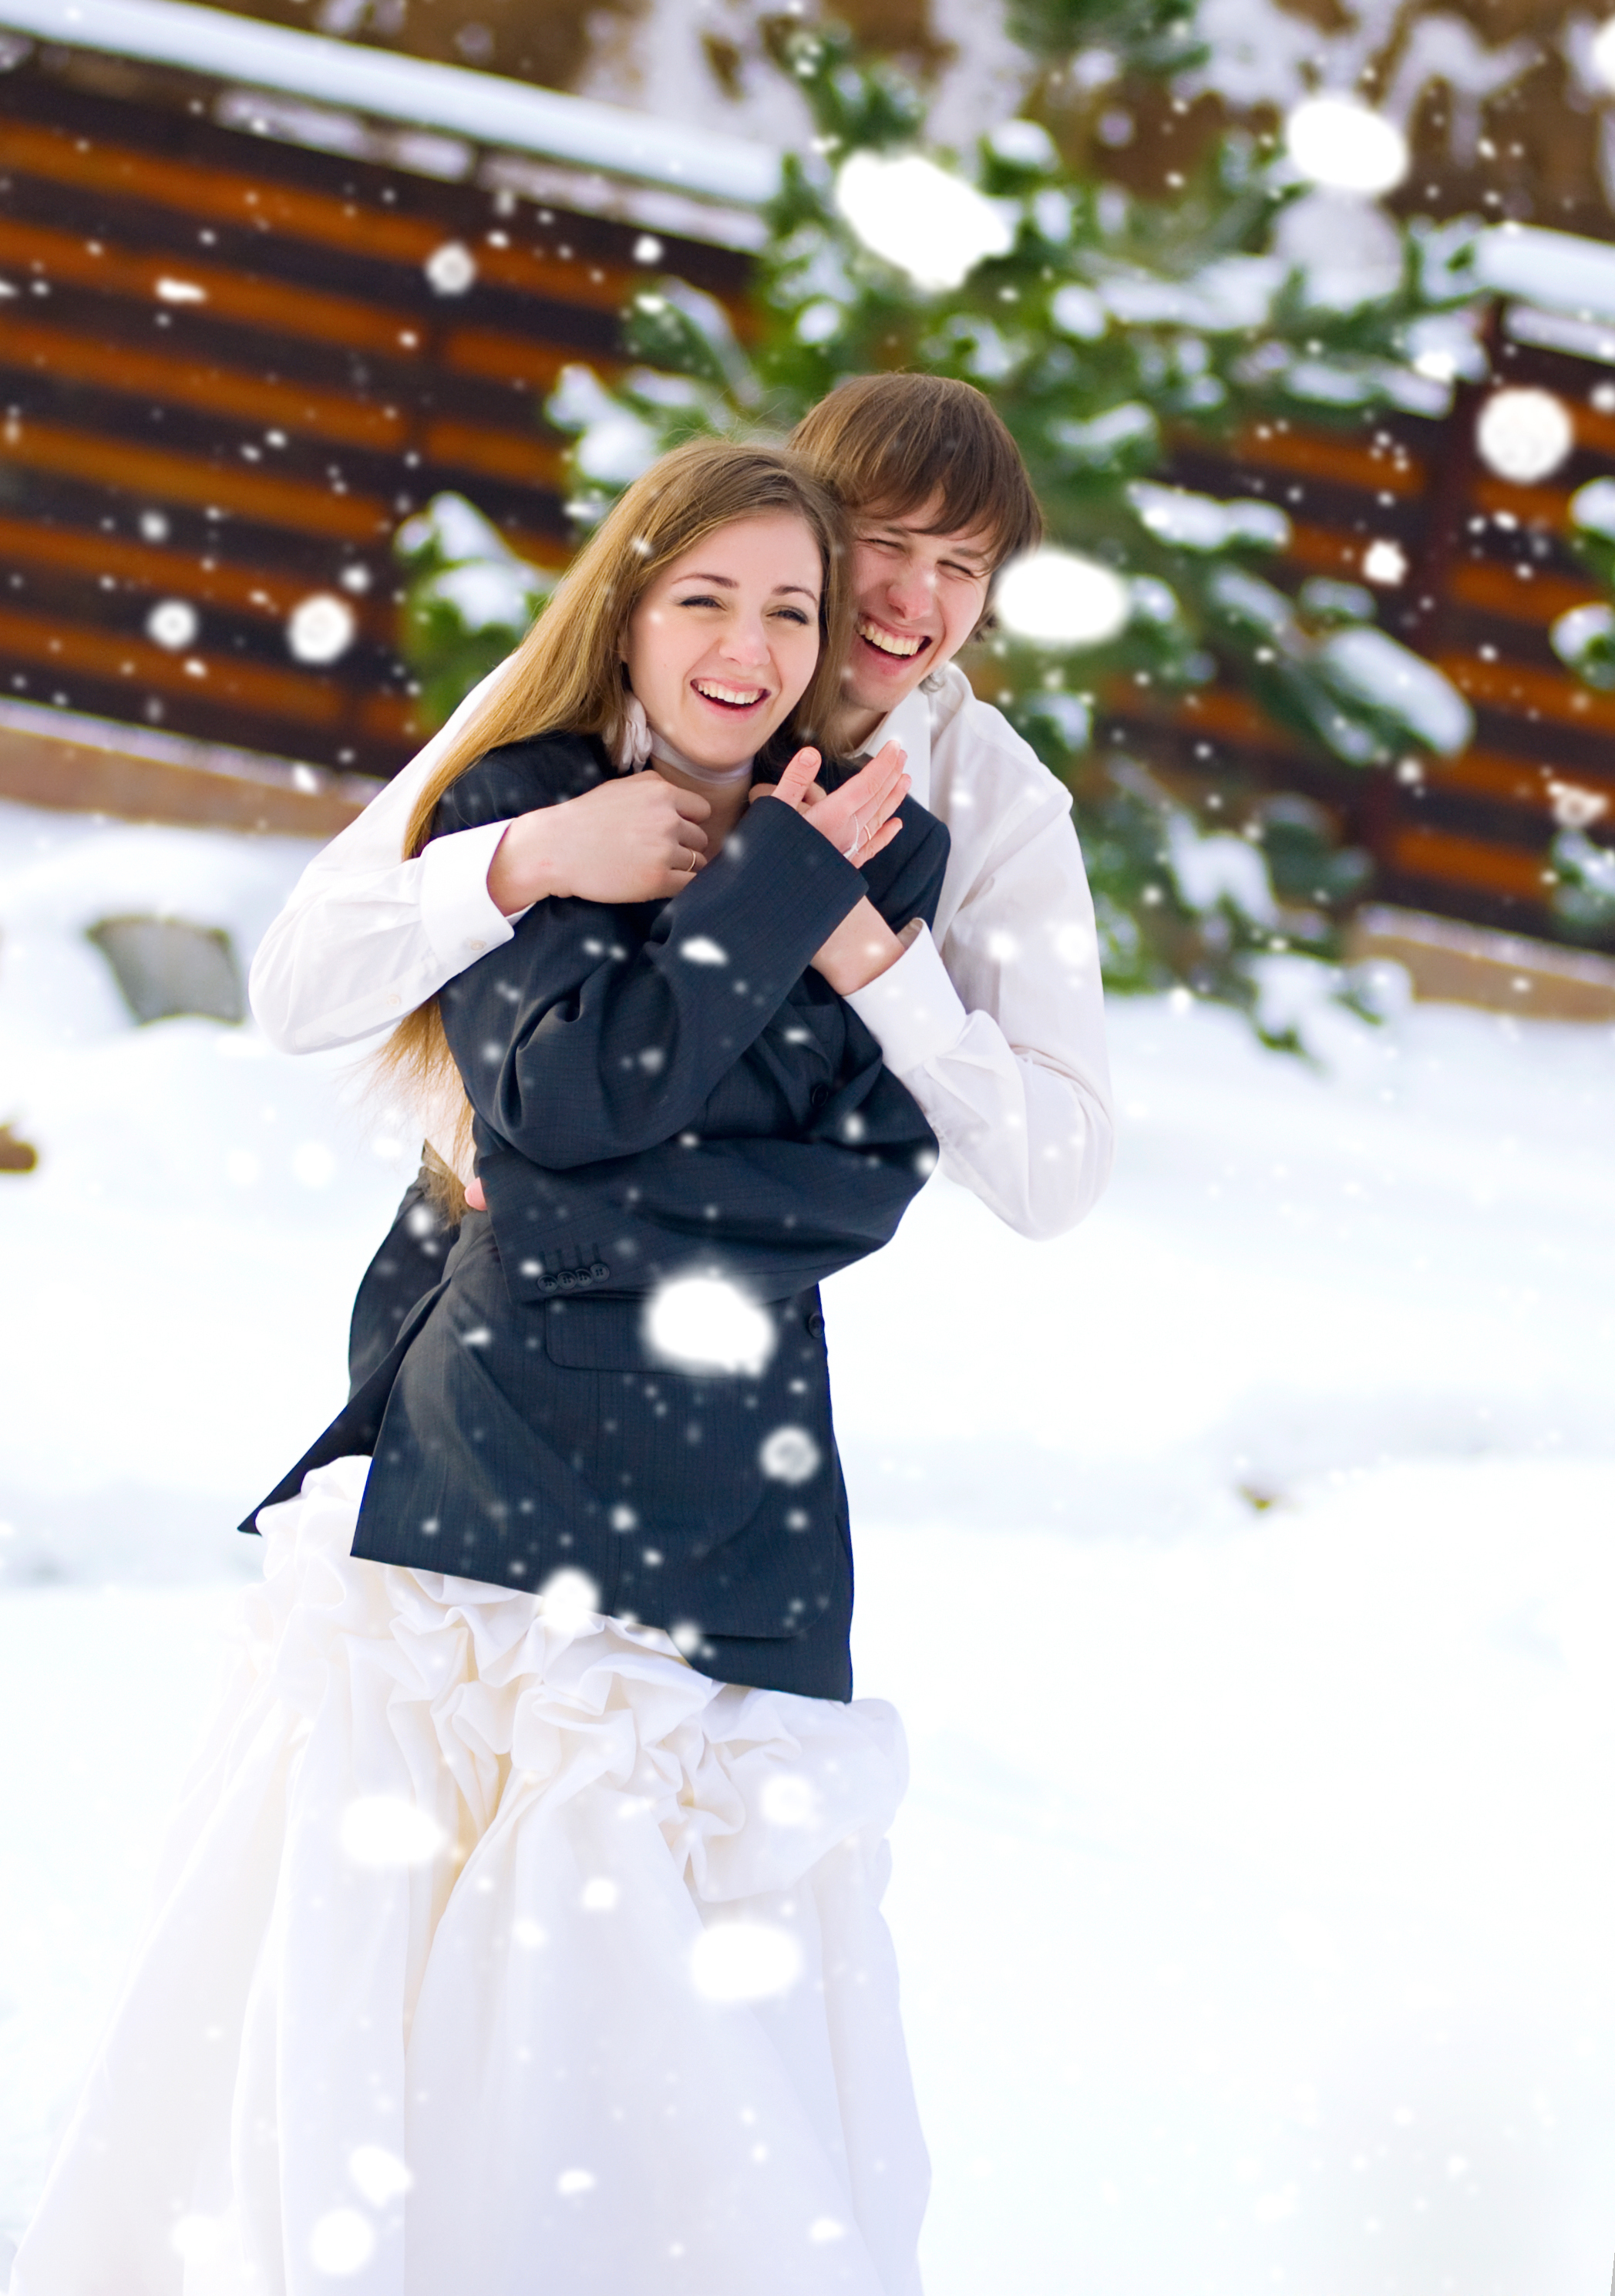 Snow Party Wedding